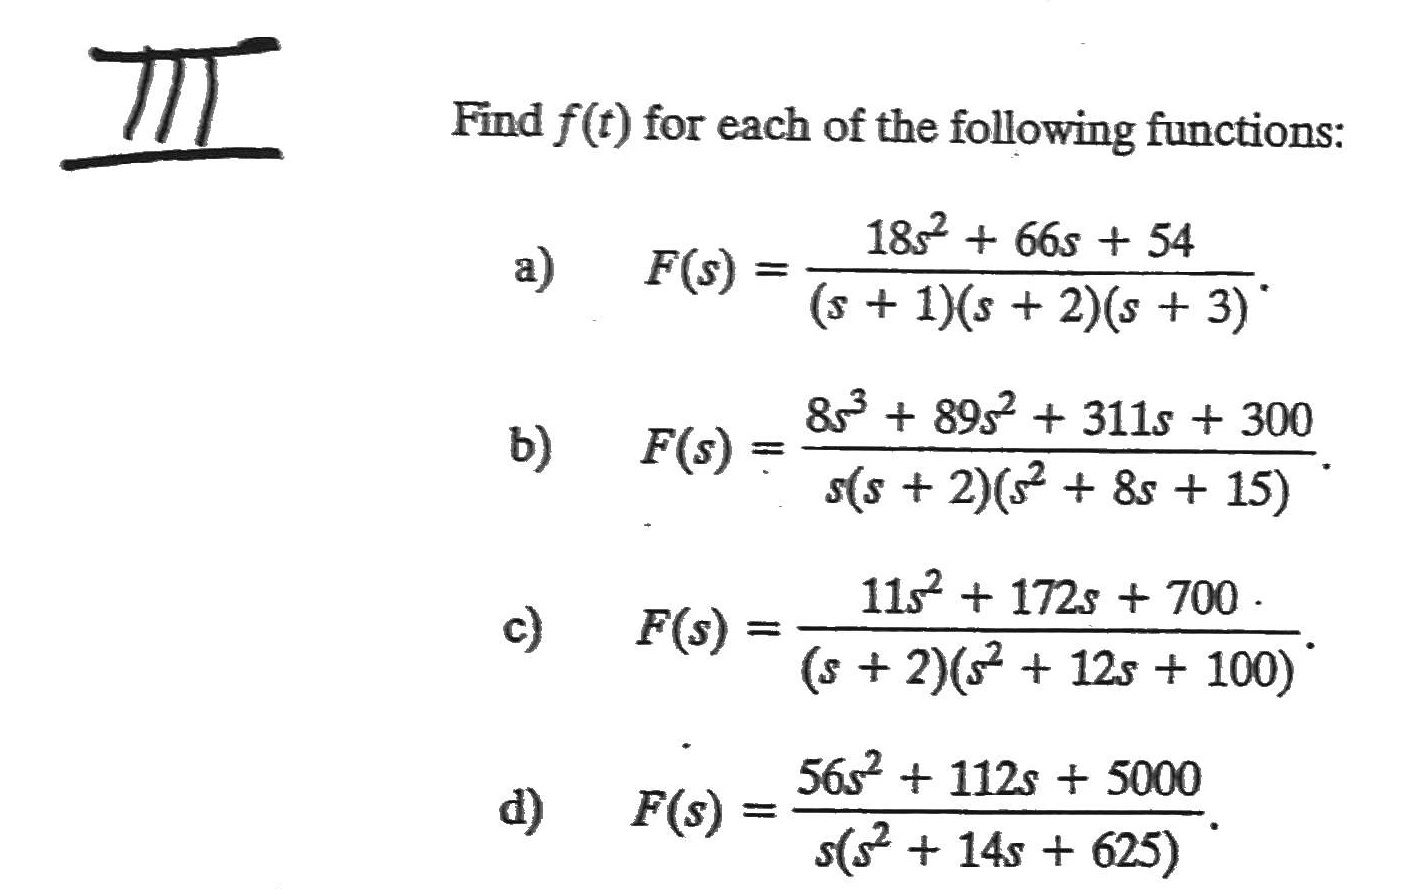 Find f(t) for each of the following functions: F